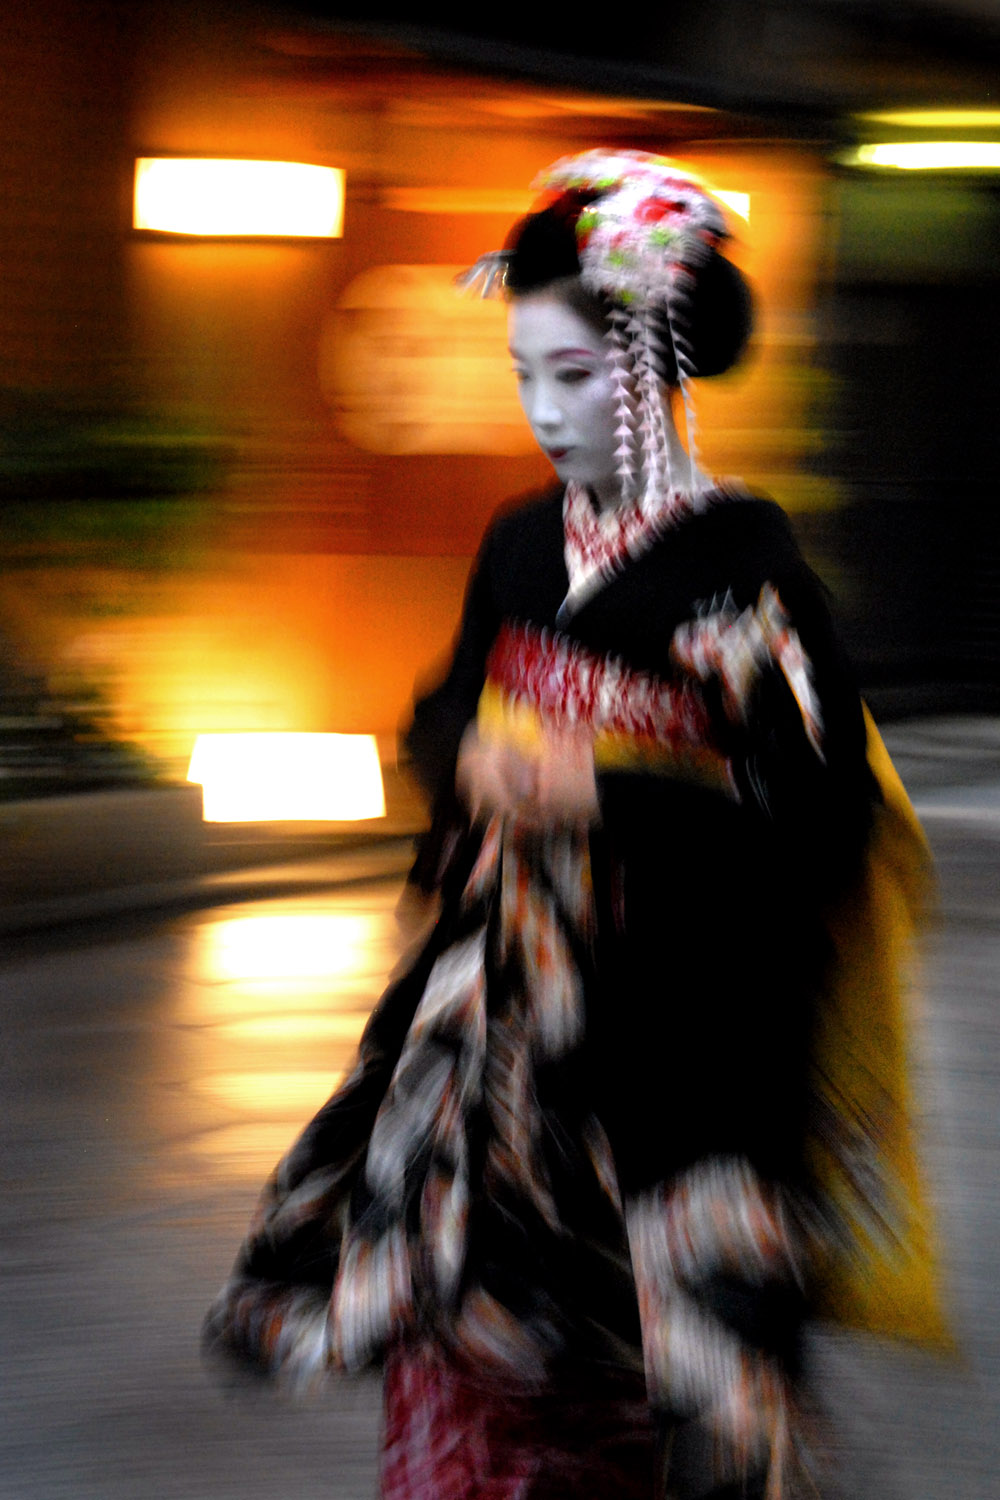 A Maiko hurrying to her appointment